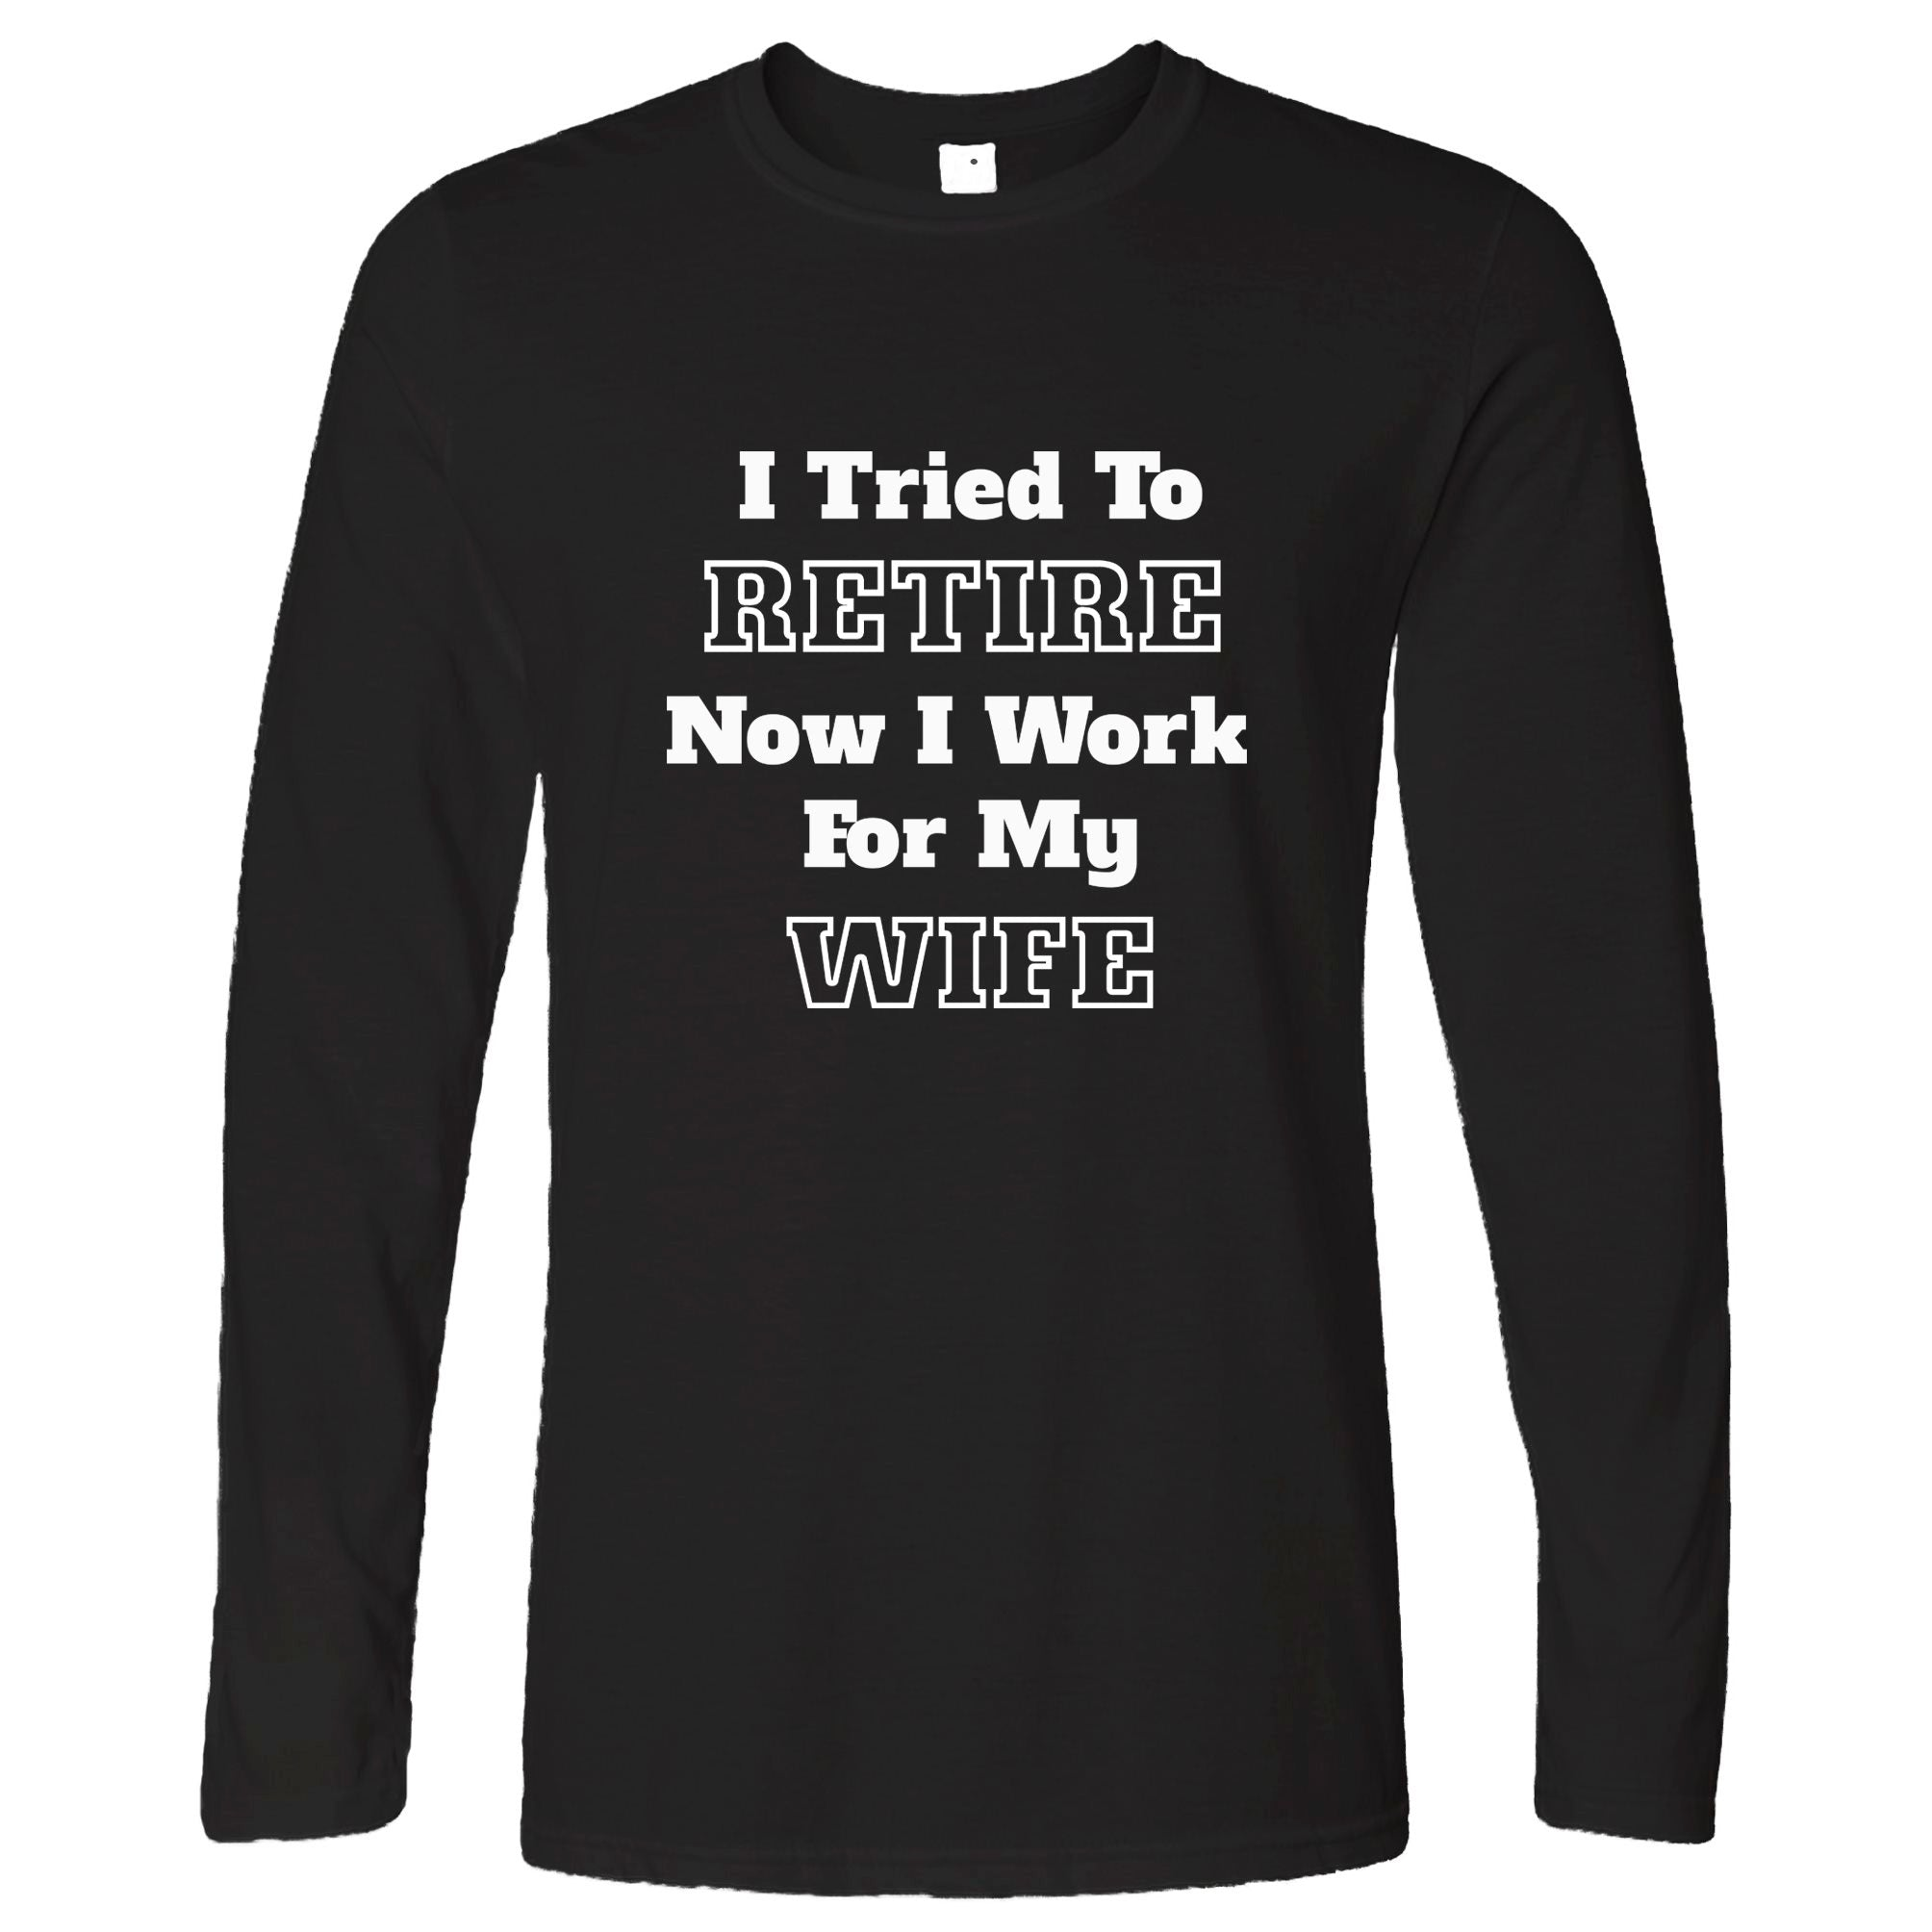 Funny Retirement Long Sleeve I Tried to Retire... T-Shirt